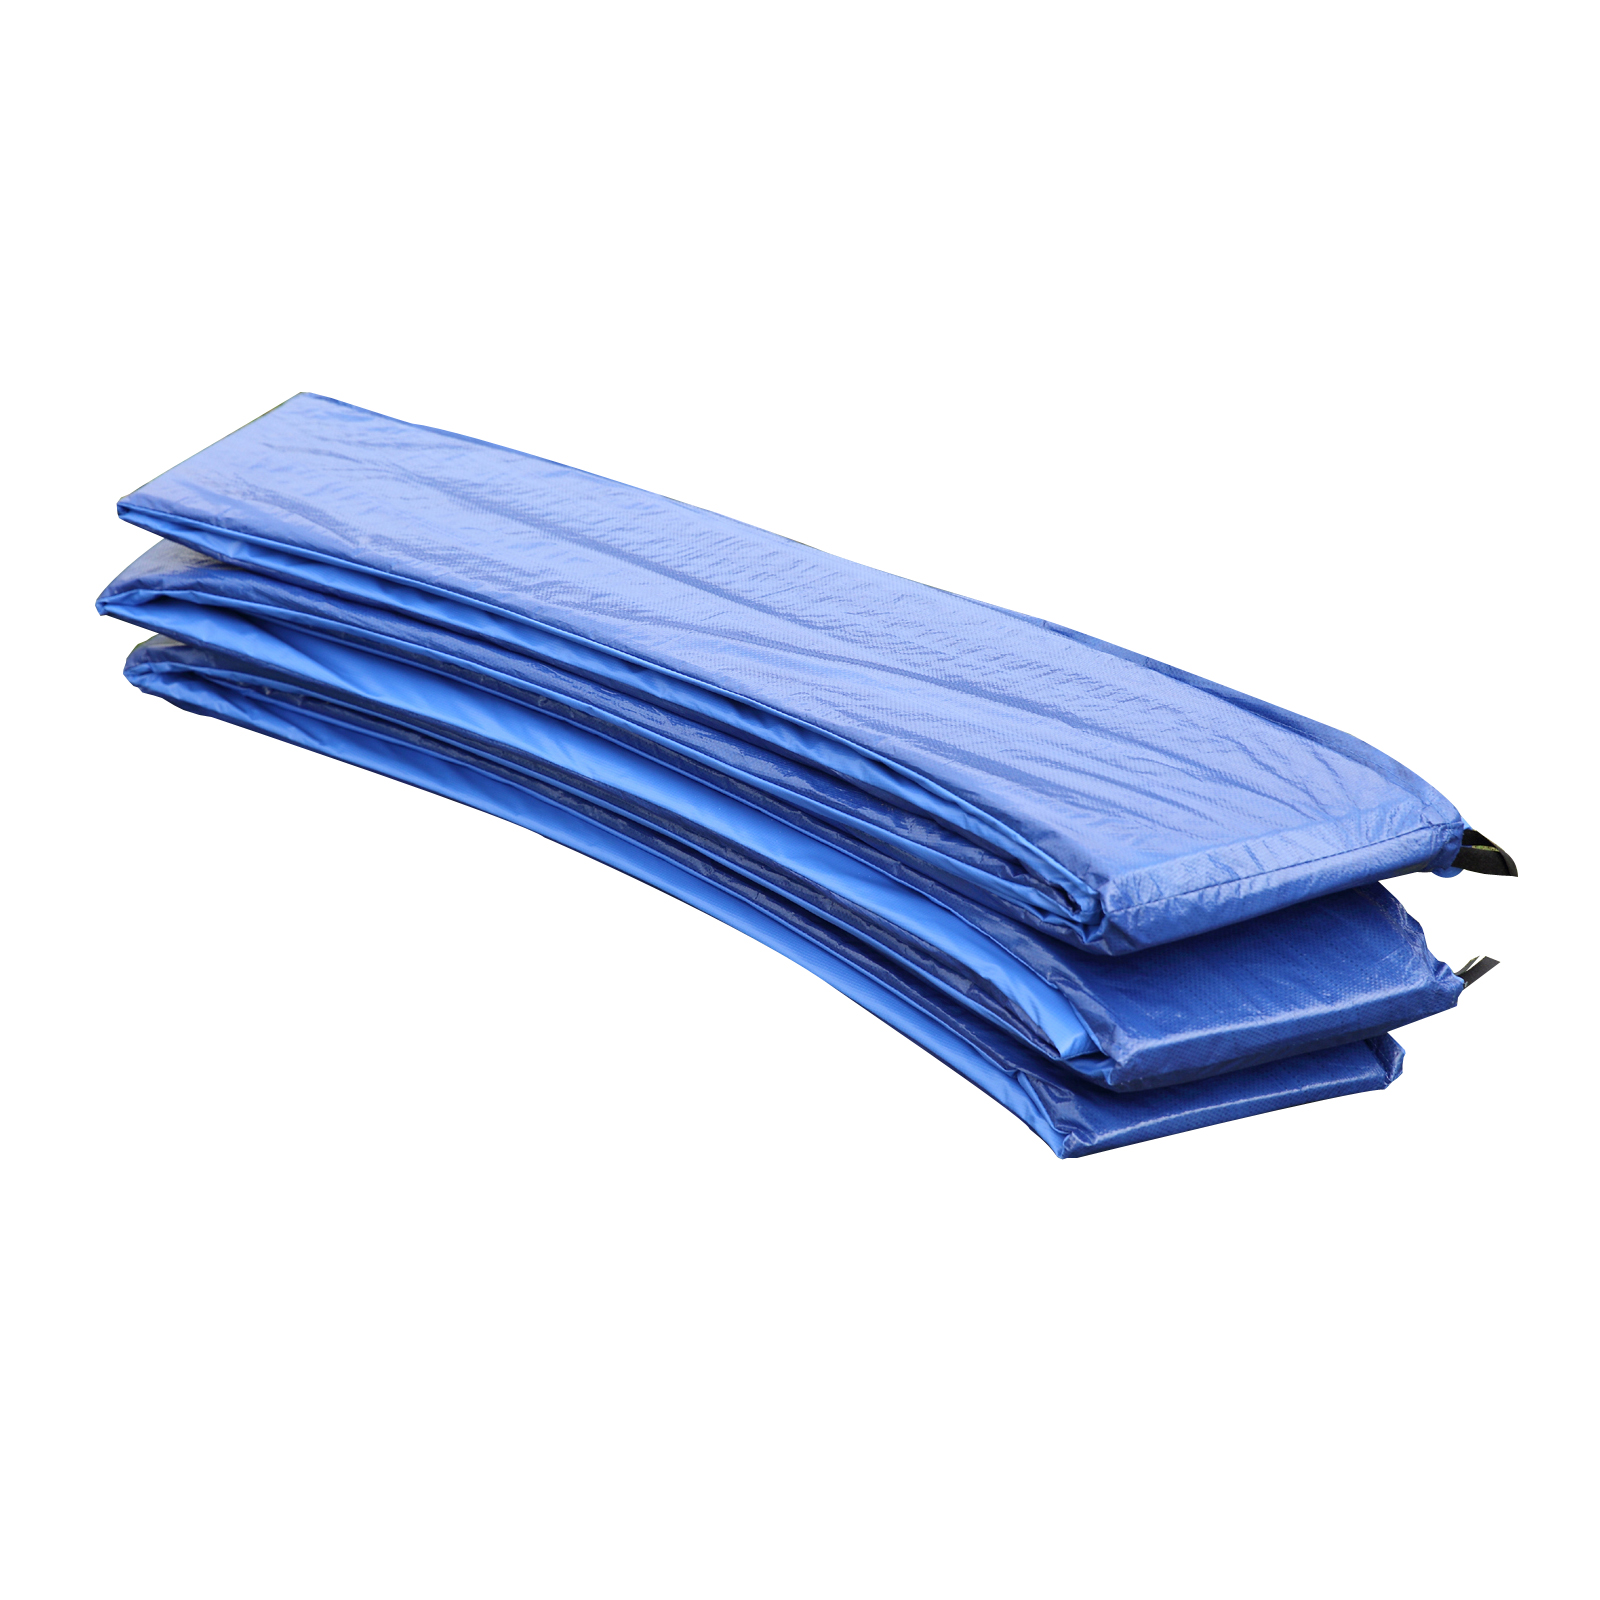 15FT Blue Trampoline Safety Pad Spring Round Frame Pad